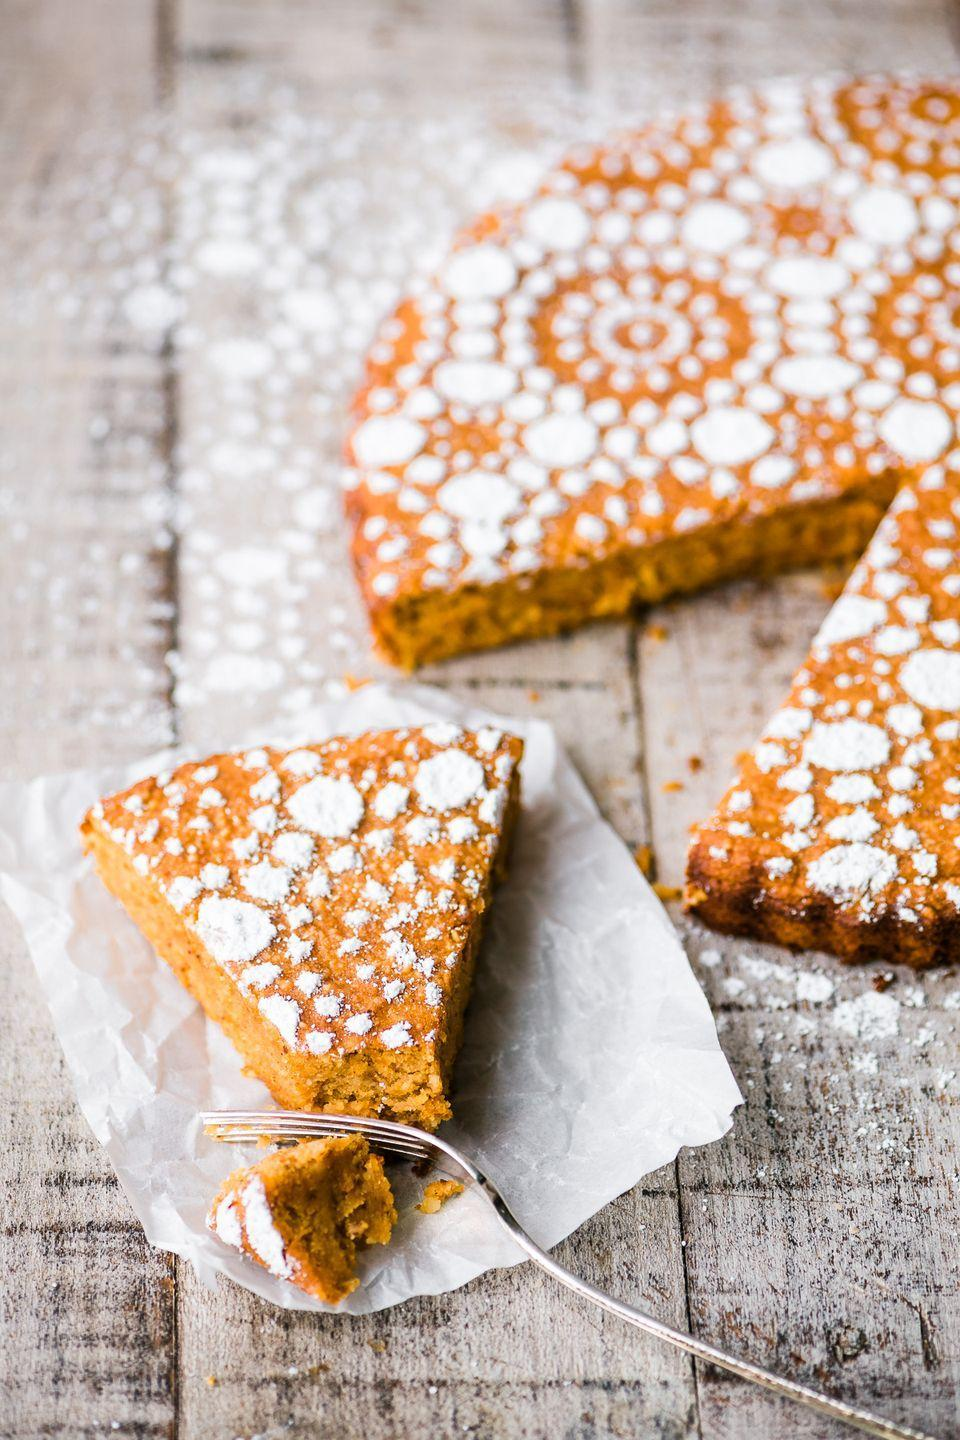 """<p>This recipe is a cross between pumpkin pie and pumpkin cake, and we're obsessed with it. </p><p>Get the <a href=""""https://theviewfromgreatisland.com/flourless-pumpkin-spice-cake-recipe/"""" rel=""""nofollow noopener"""" target=""""_blank"""" data-ylk=""""slk:Flourless Pumpkin Spice Cake"""" class=""""link rapid-noclick-resp"""">Flourless Pumpkin Spice Cake</a> recipe.</p><p>Recipe from <a href=""""https://theviewfromgreatisland.com/"""" rel=""""nofollow noopener"""" target=""""_blank"""" data-ylk=""""slk:A View From The Great Island"""" class=""""link rapid-noclick-resp"""">A View From The Great Island</a>.</p>"""